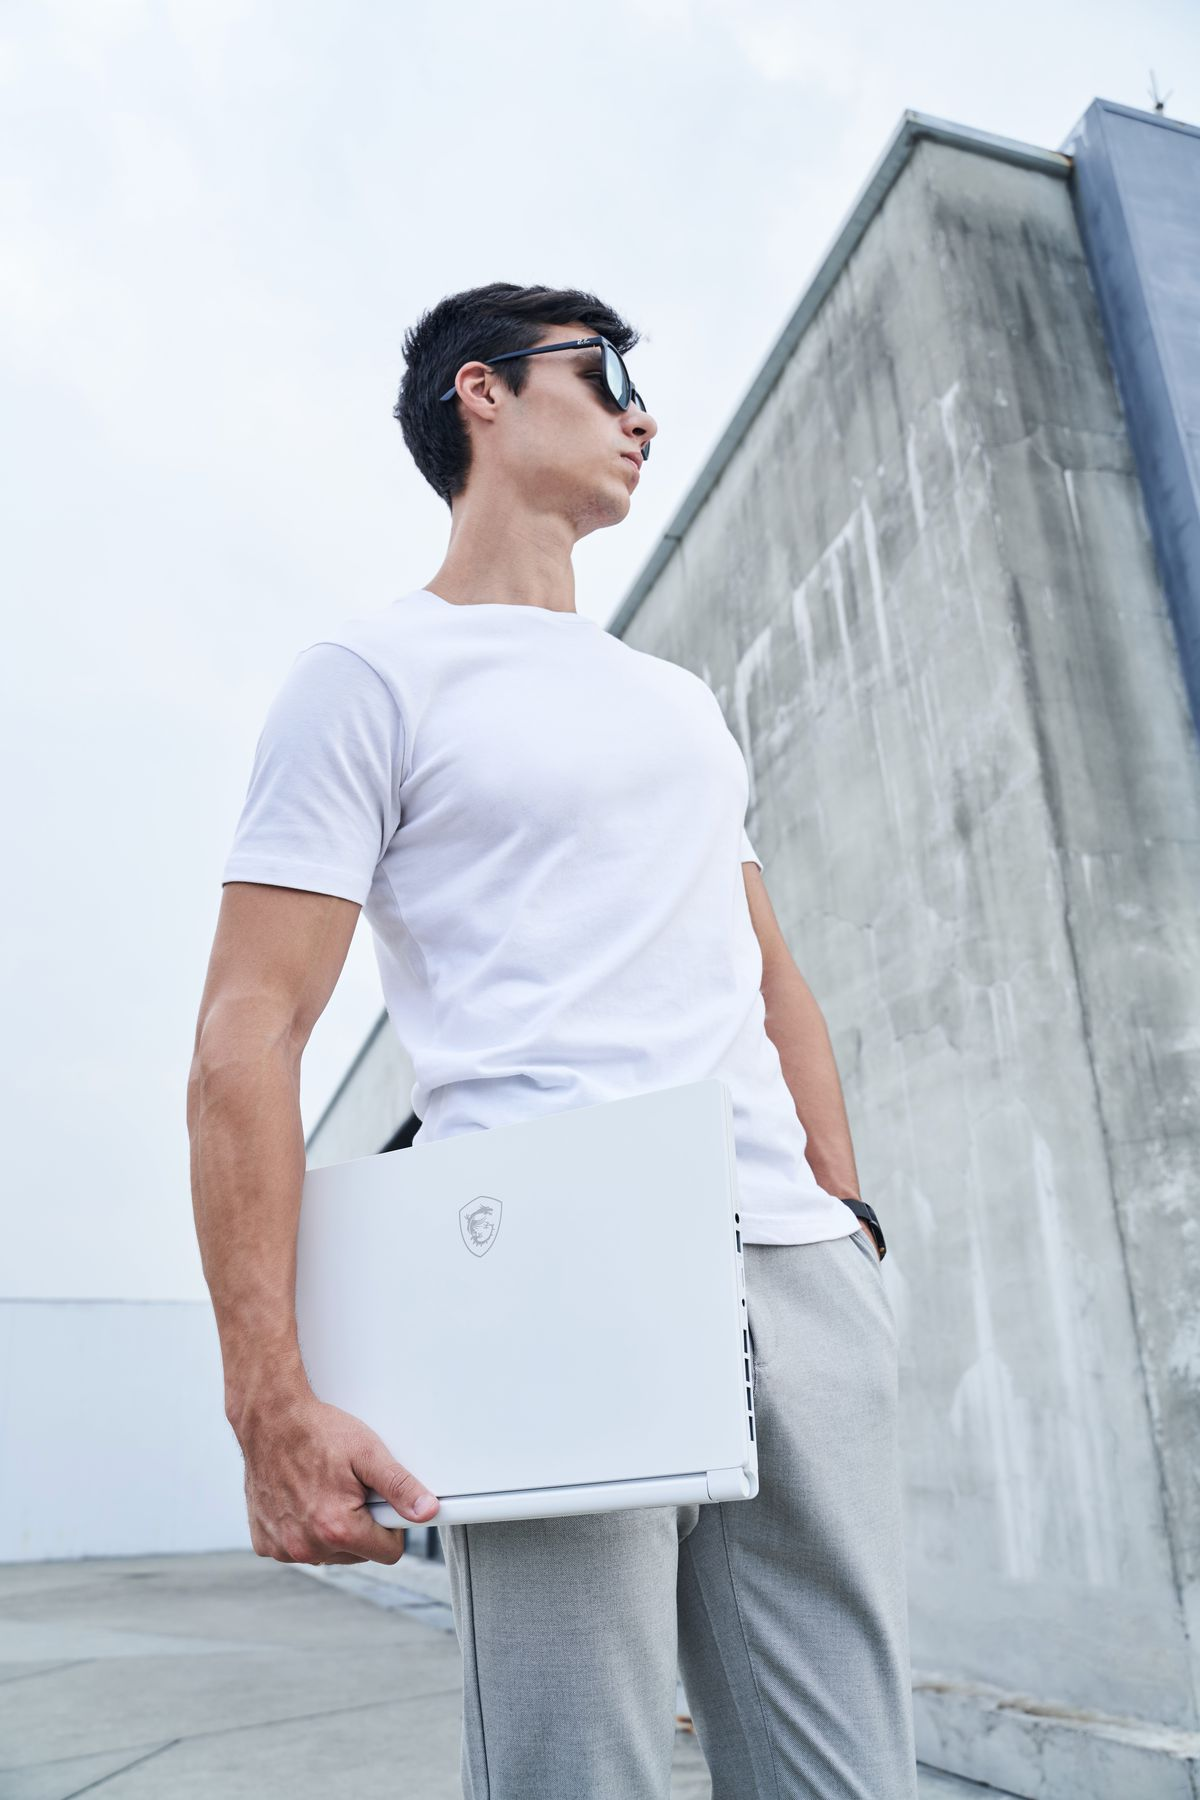 A user stands on the roof of a building wearing a white T-Shirt, sunglasses and sweatpants. They carry a white MSI Stealth 15M under their right arm while looking off to the left.